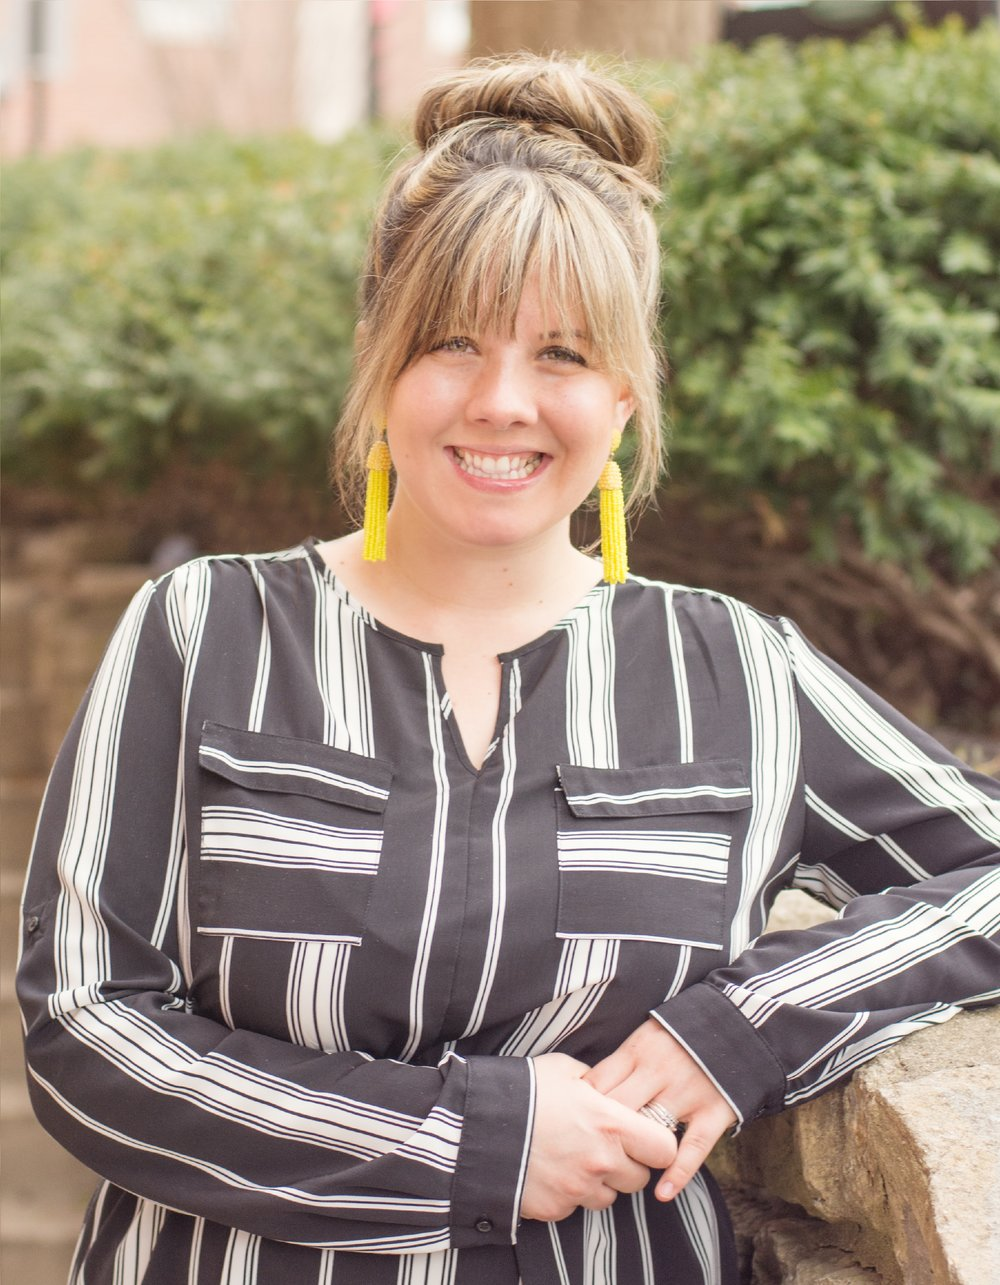 Kacey Widmeyer, M.S.   International Board Certified Lactation Consultant, Postpartum Doula  & Labor Doula